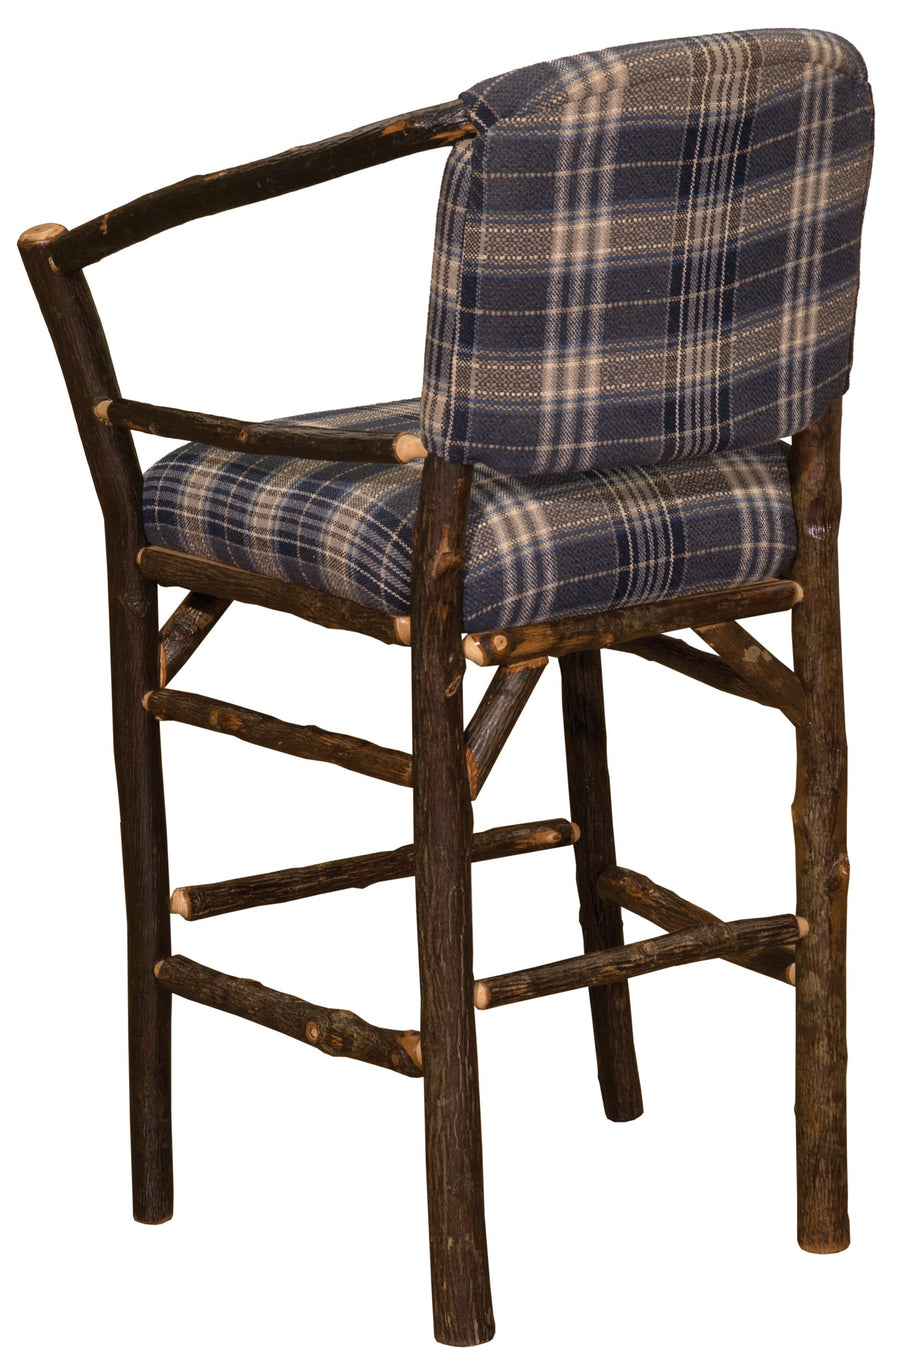 "Natural Hickory Log Hoop Bar Stool - 24"" high - With Upholstered Seat - Standard Finish Stool Fireside Lodge Customer's Own Material"